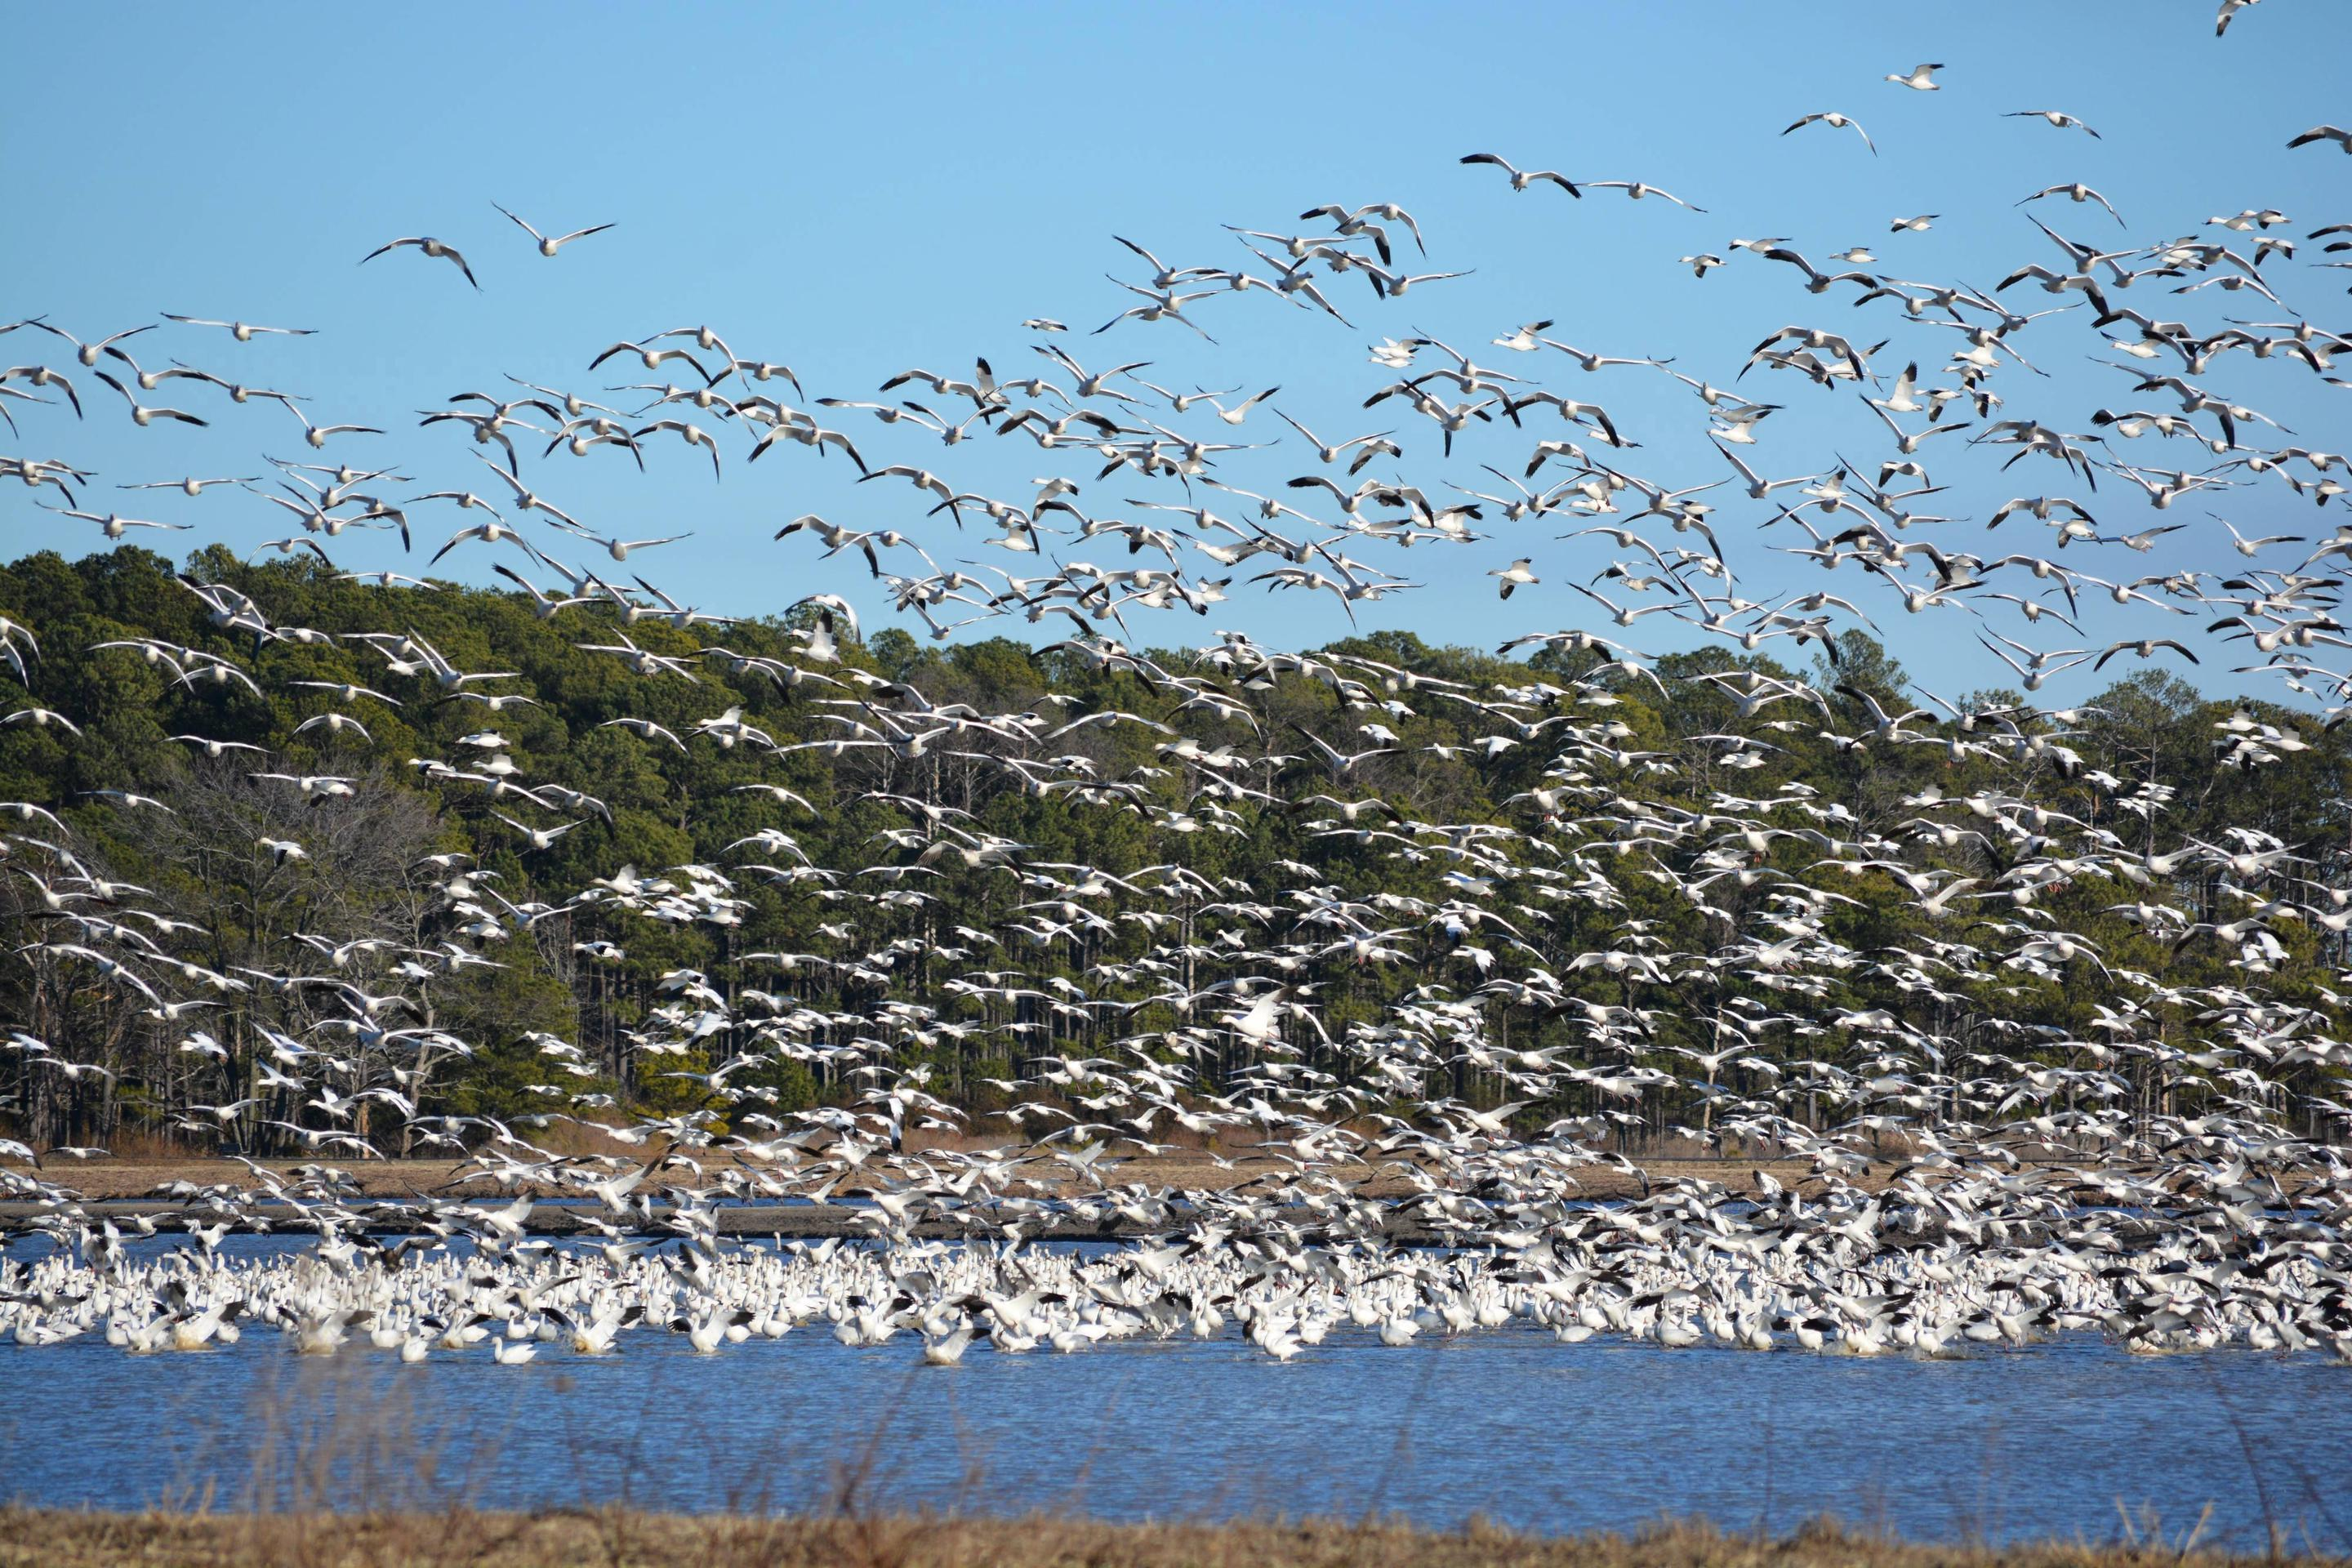 Snow geese taking off from a refuge impoundment.Snow geese leaving a refuge impoundment.